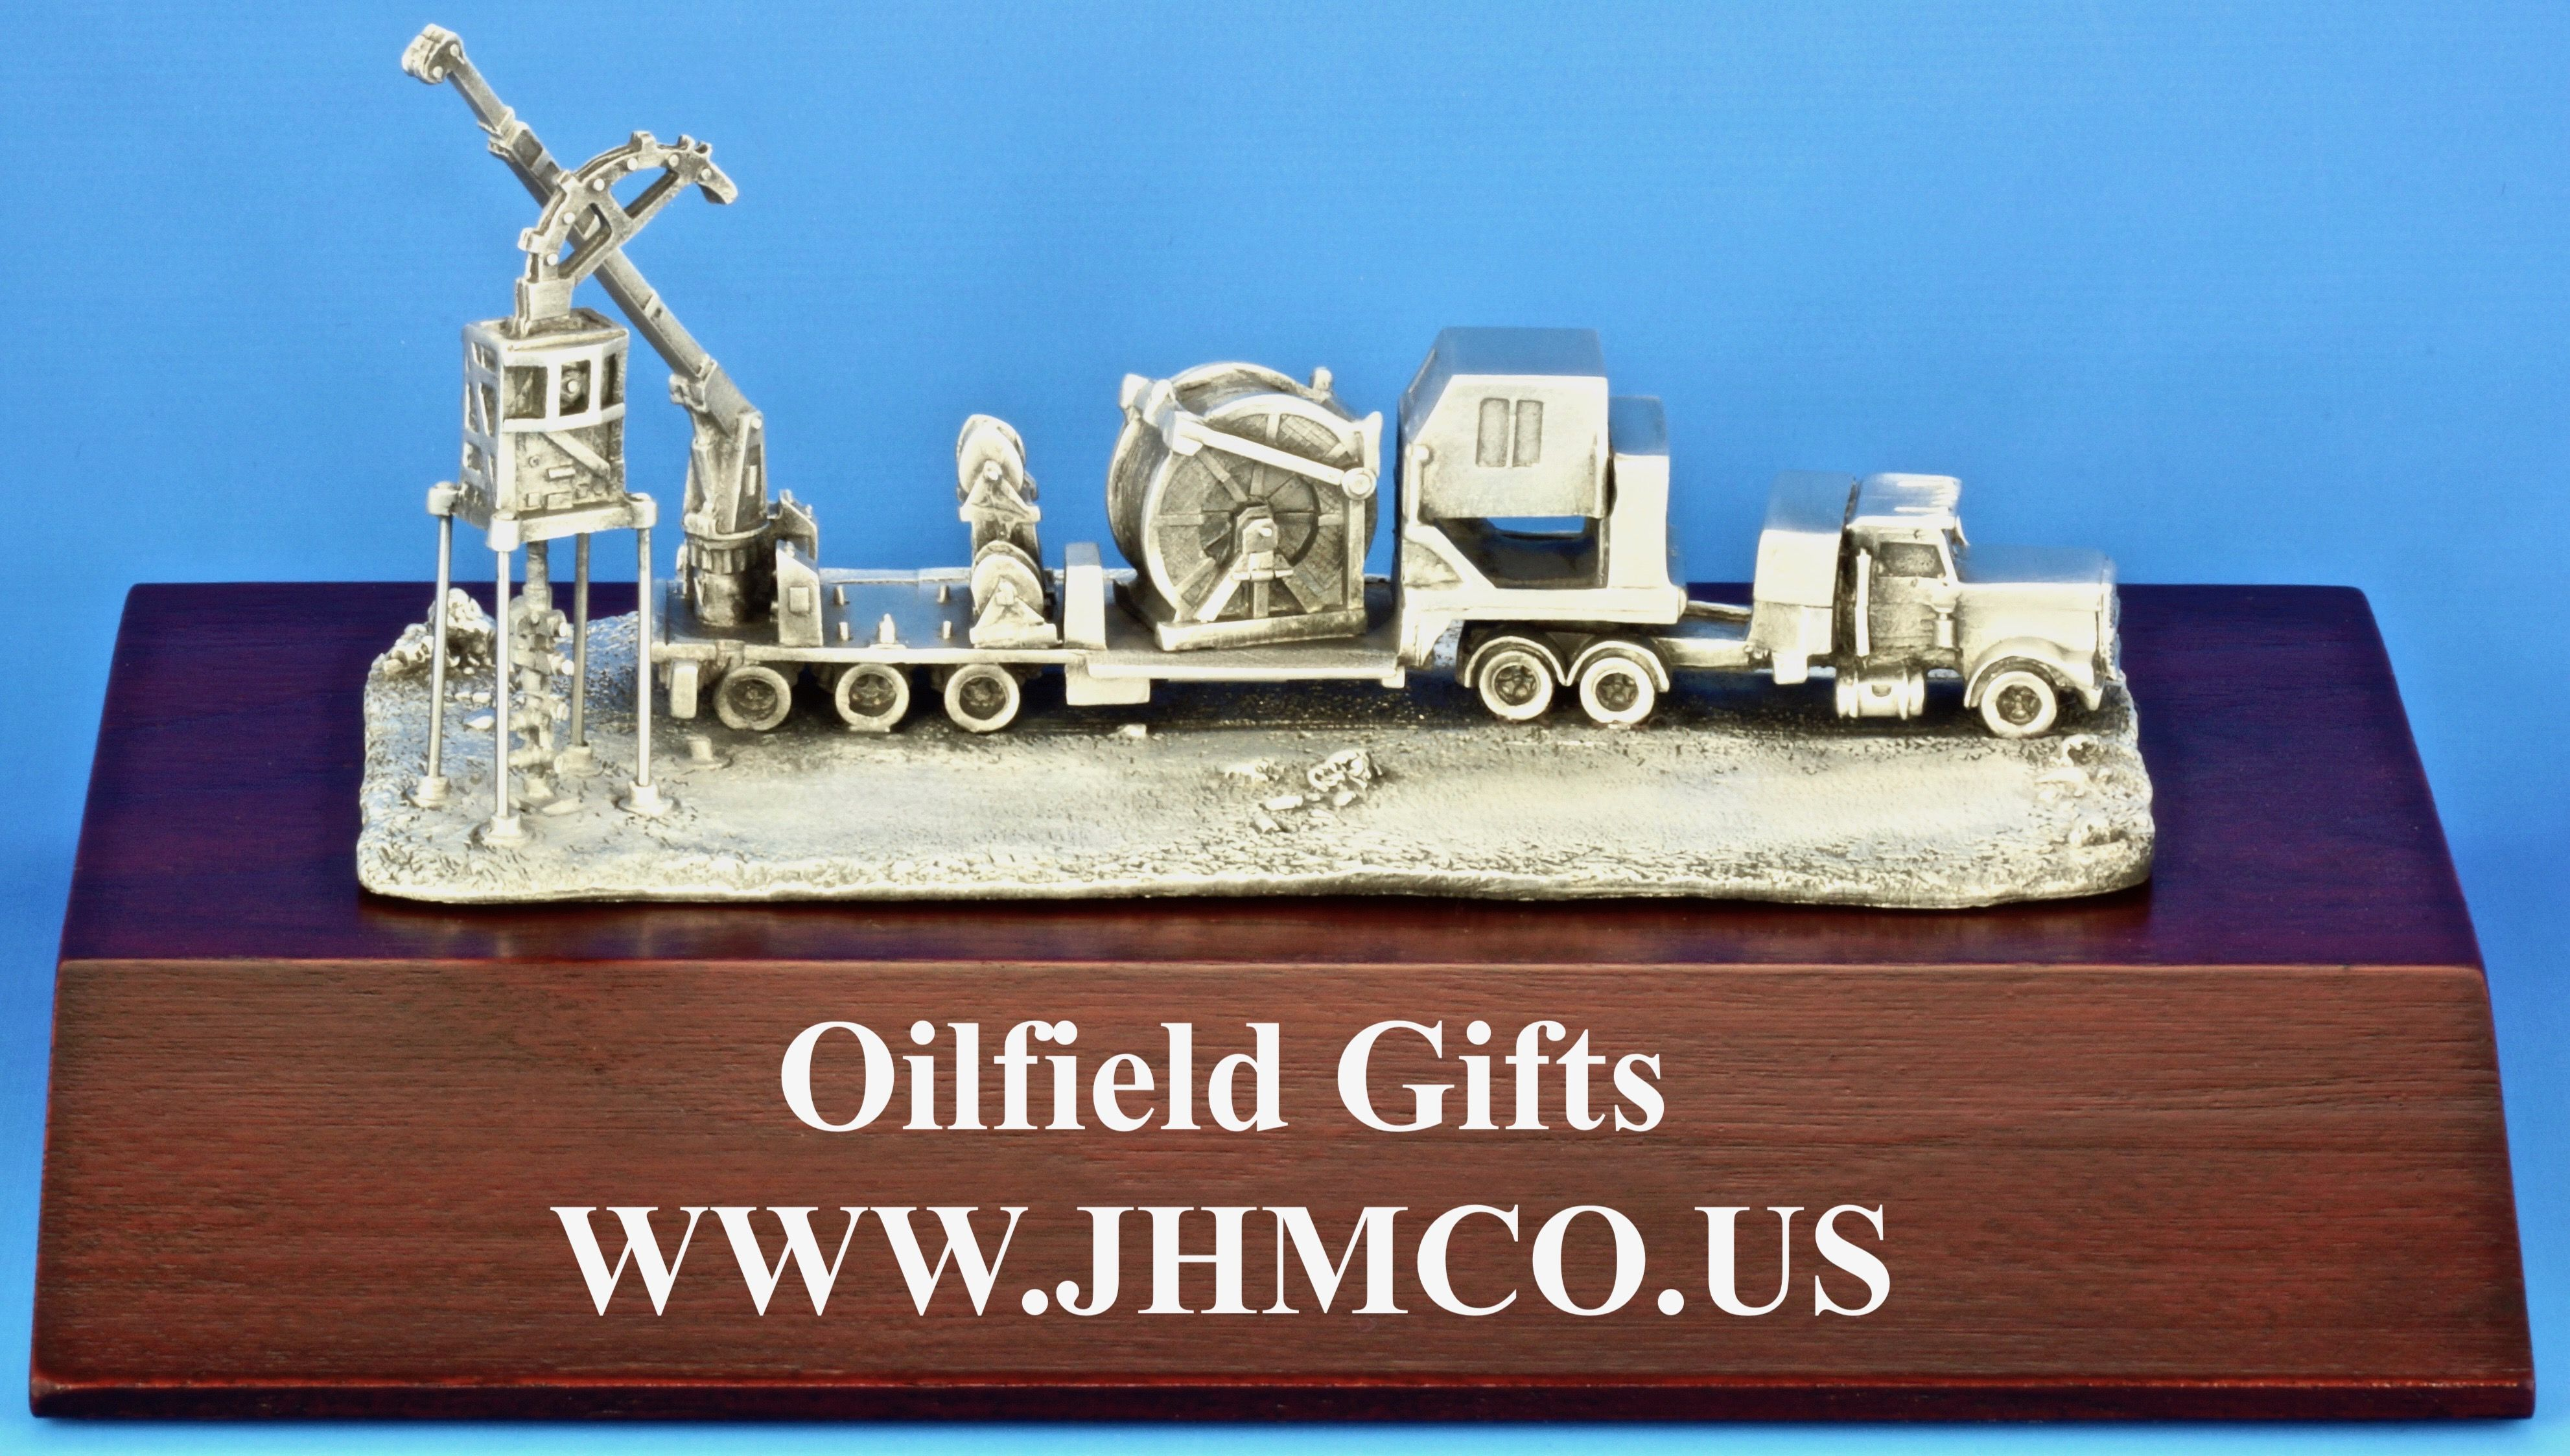 Coiled Tubing Rig Model Oilfield Gift For Oil And Gas Industry Workers John H Martin Company Since 1937